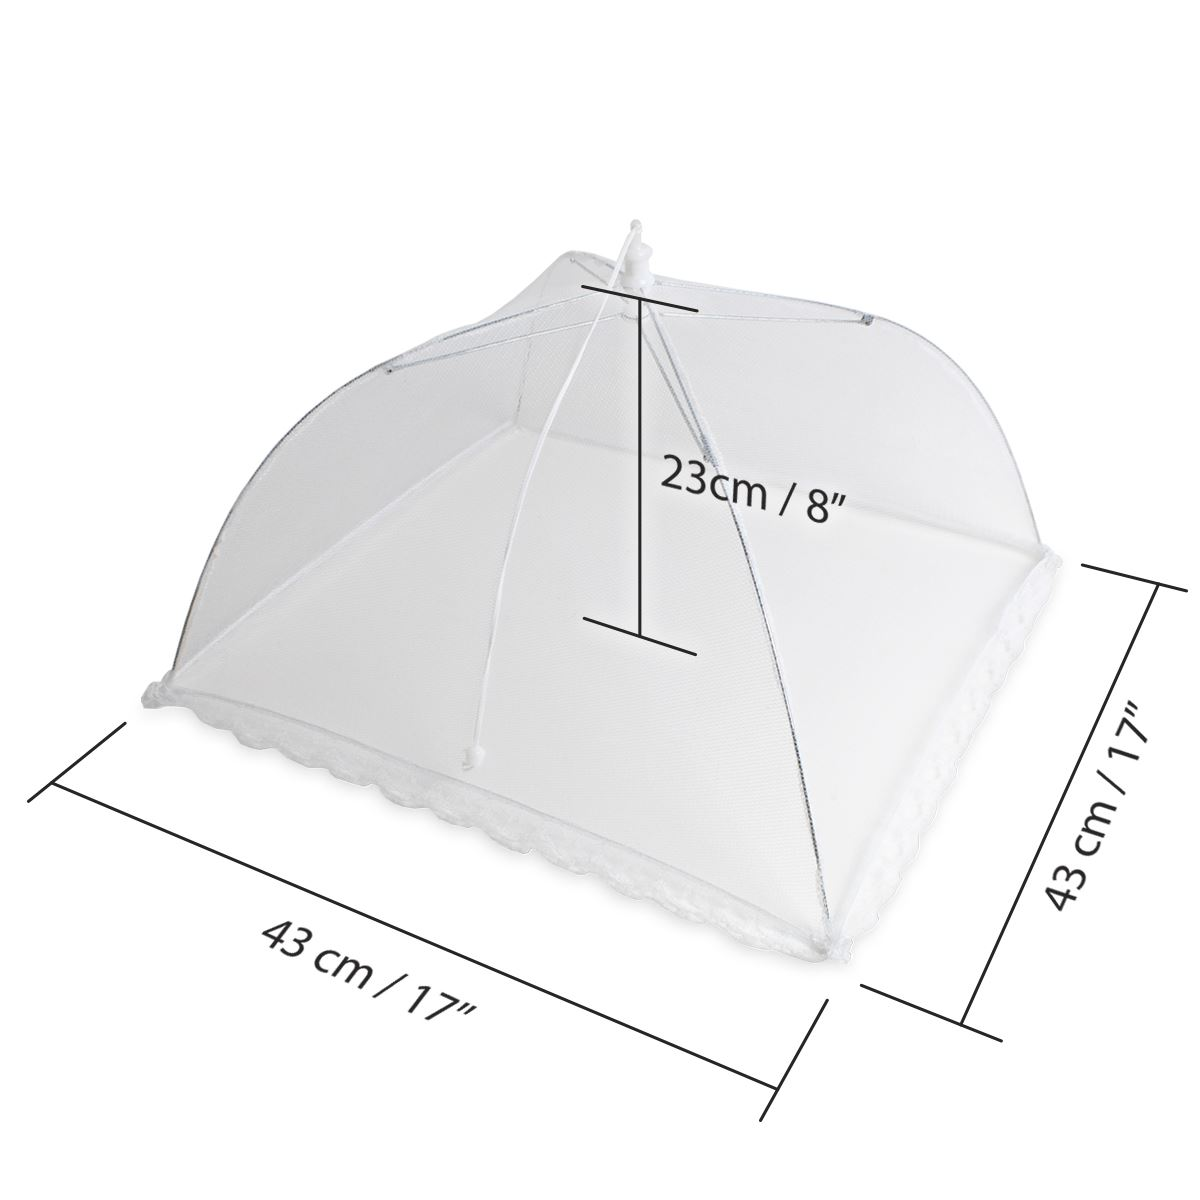 Reusable-Pop-up-Mesh-Screen-Dome-Food-Cover-Tent-Umbrella-Net-BBQ-Table-Fly thumbnail 3